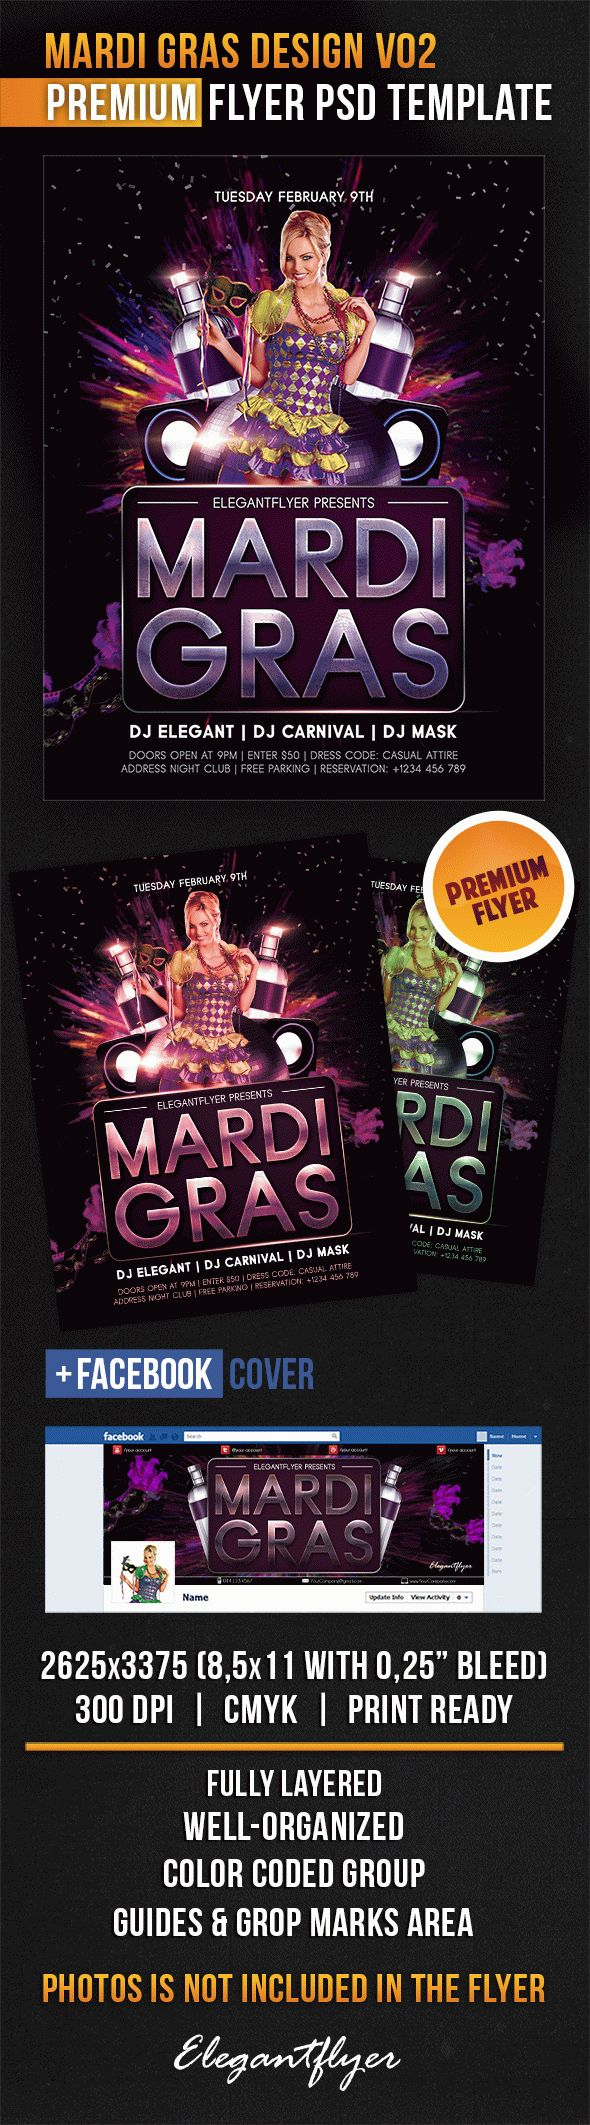 Mardi Gras Design V02 – Flyer PSD Template + Facebook Cover